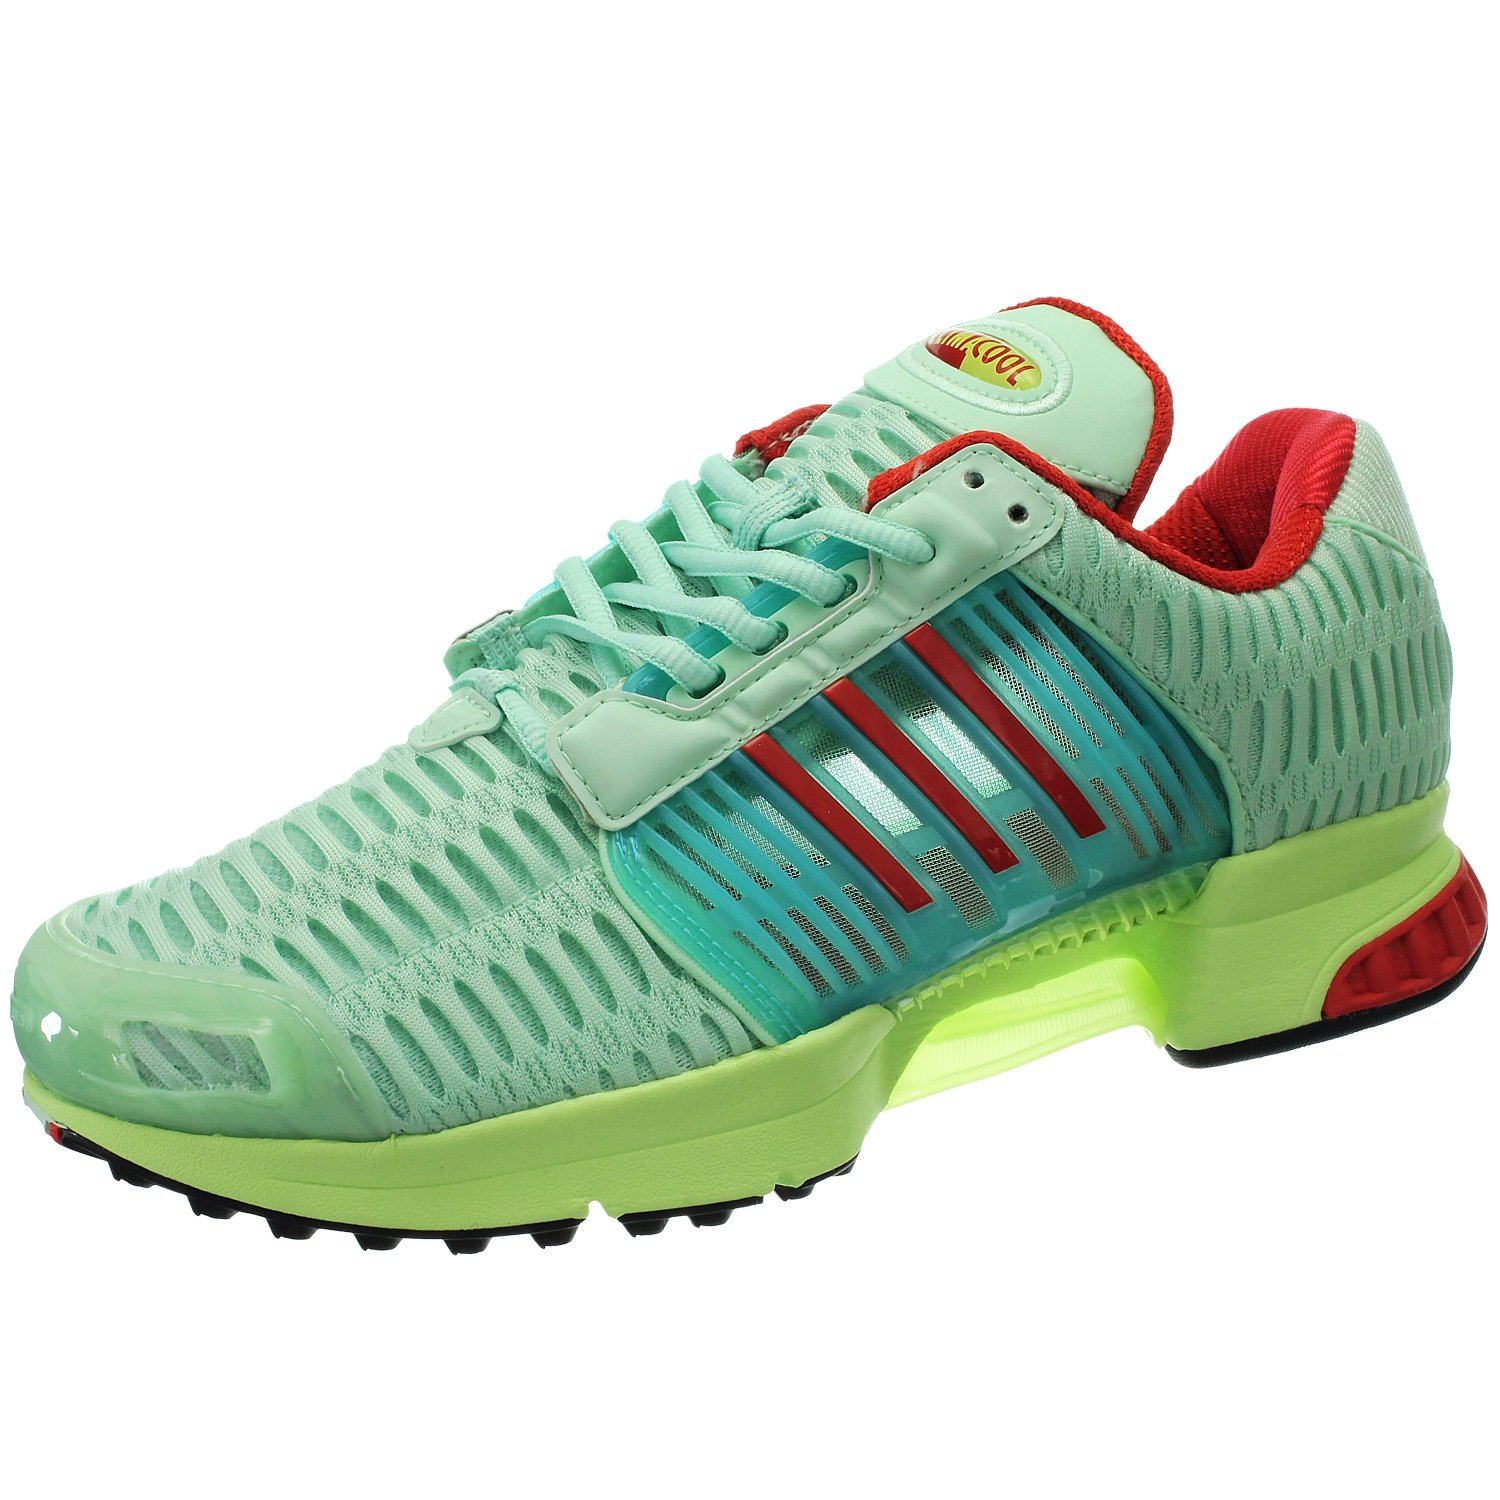 buy online 739e6 83017 adidas Climacool 1 - Frozen Green Amazon.co.uk Shoes  Bags